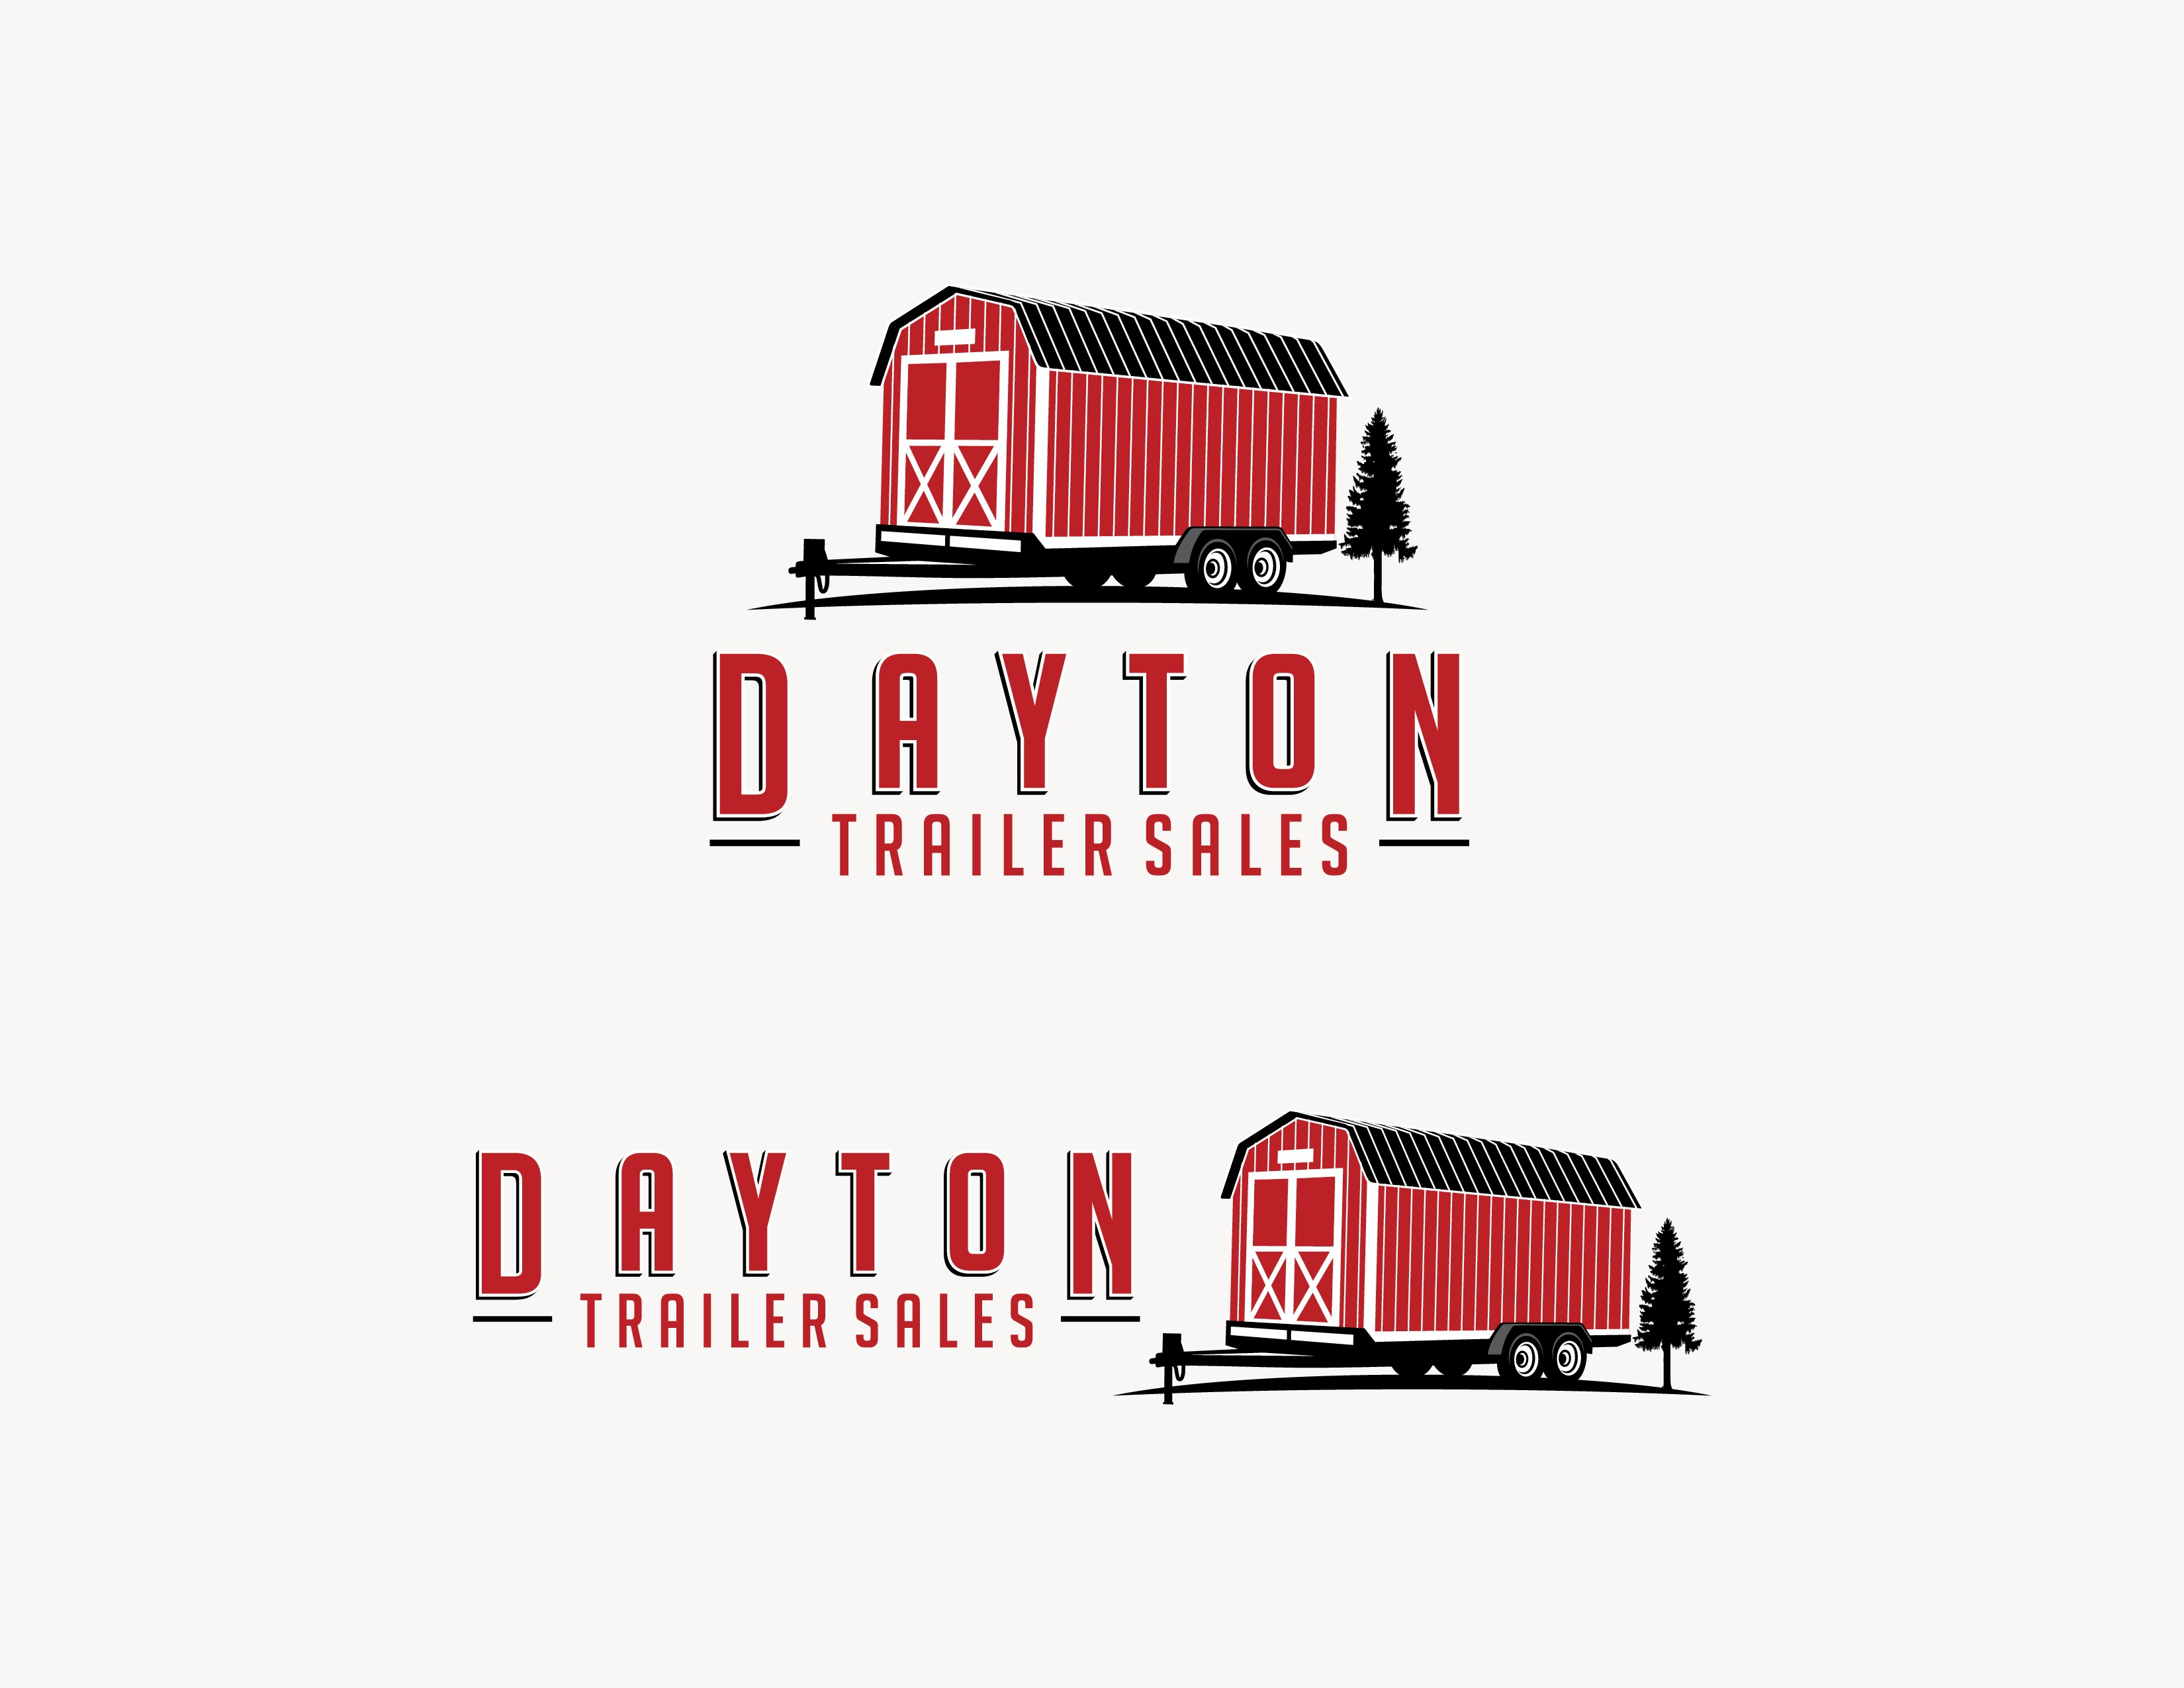 Help bring life to a trailer company!